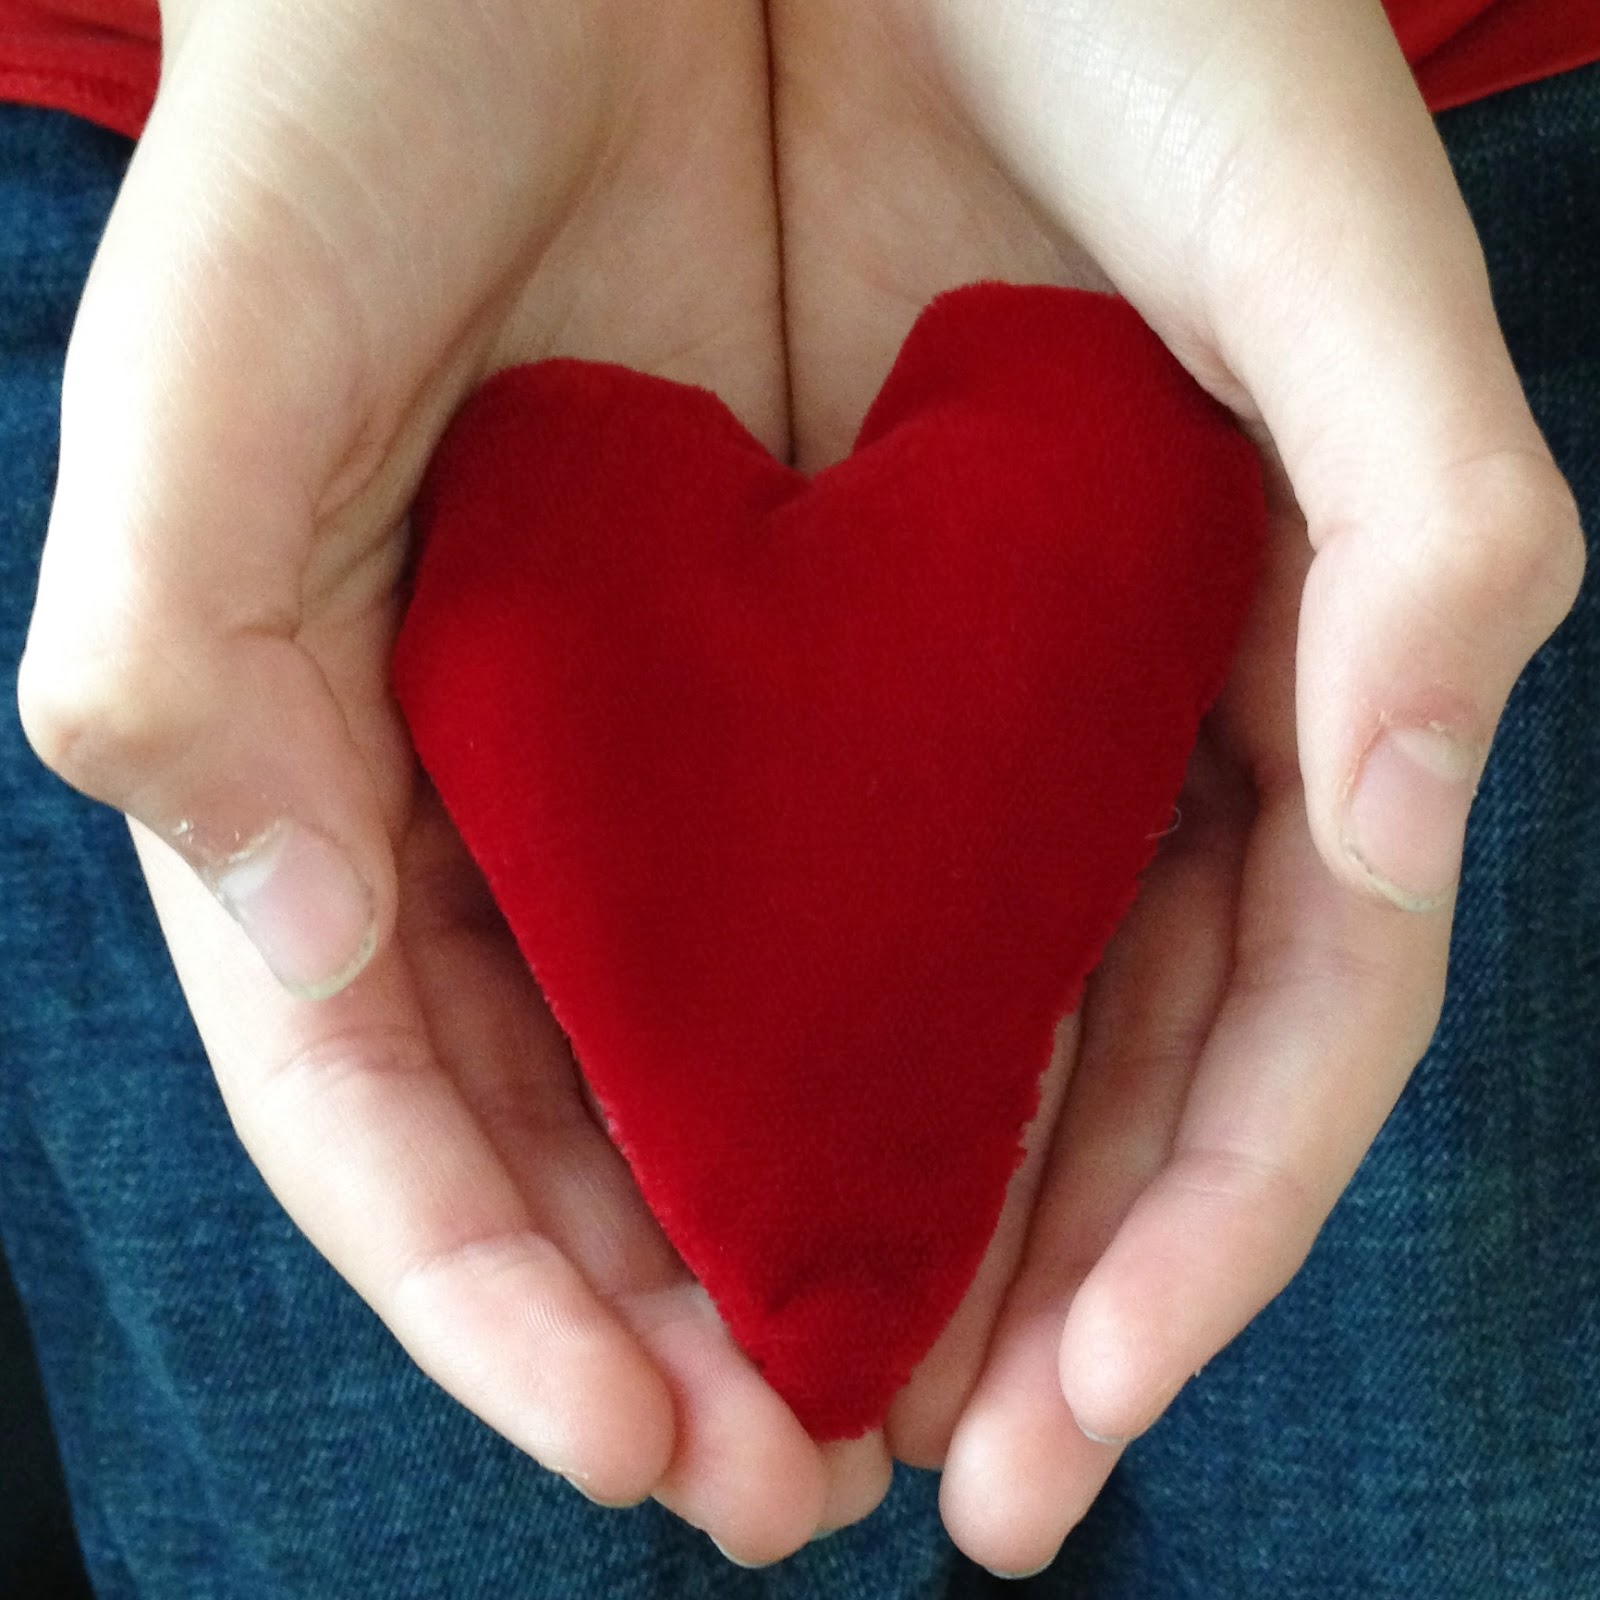 http://webloomhere.blogspot.com/2014/03/holding-hearts.html